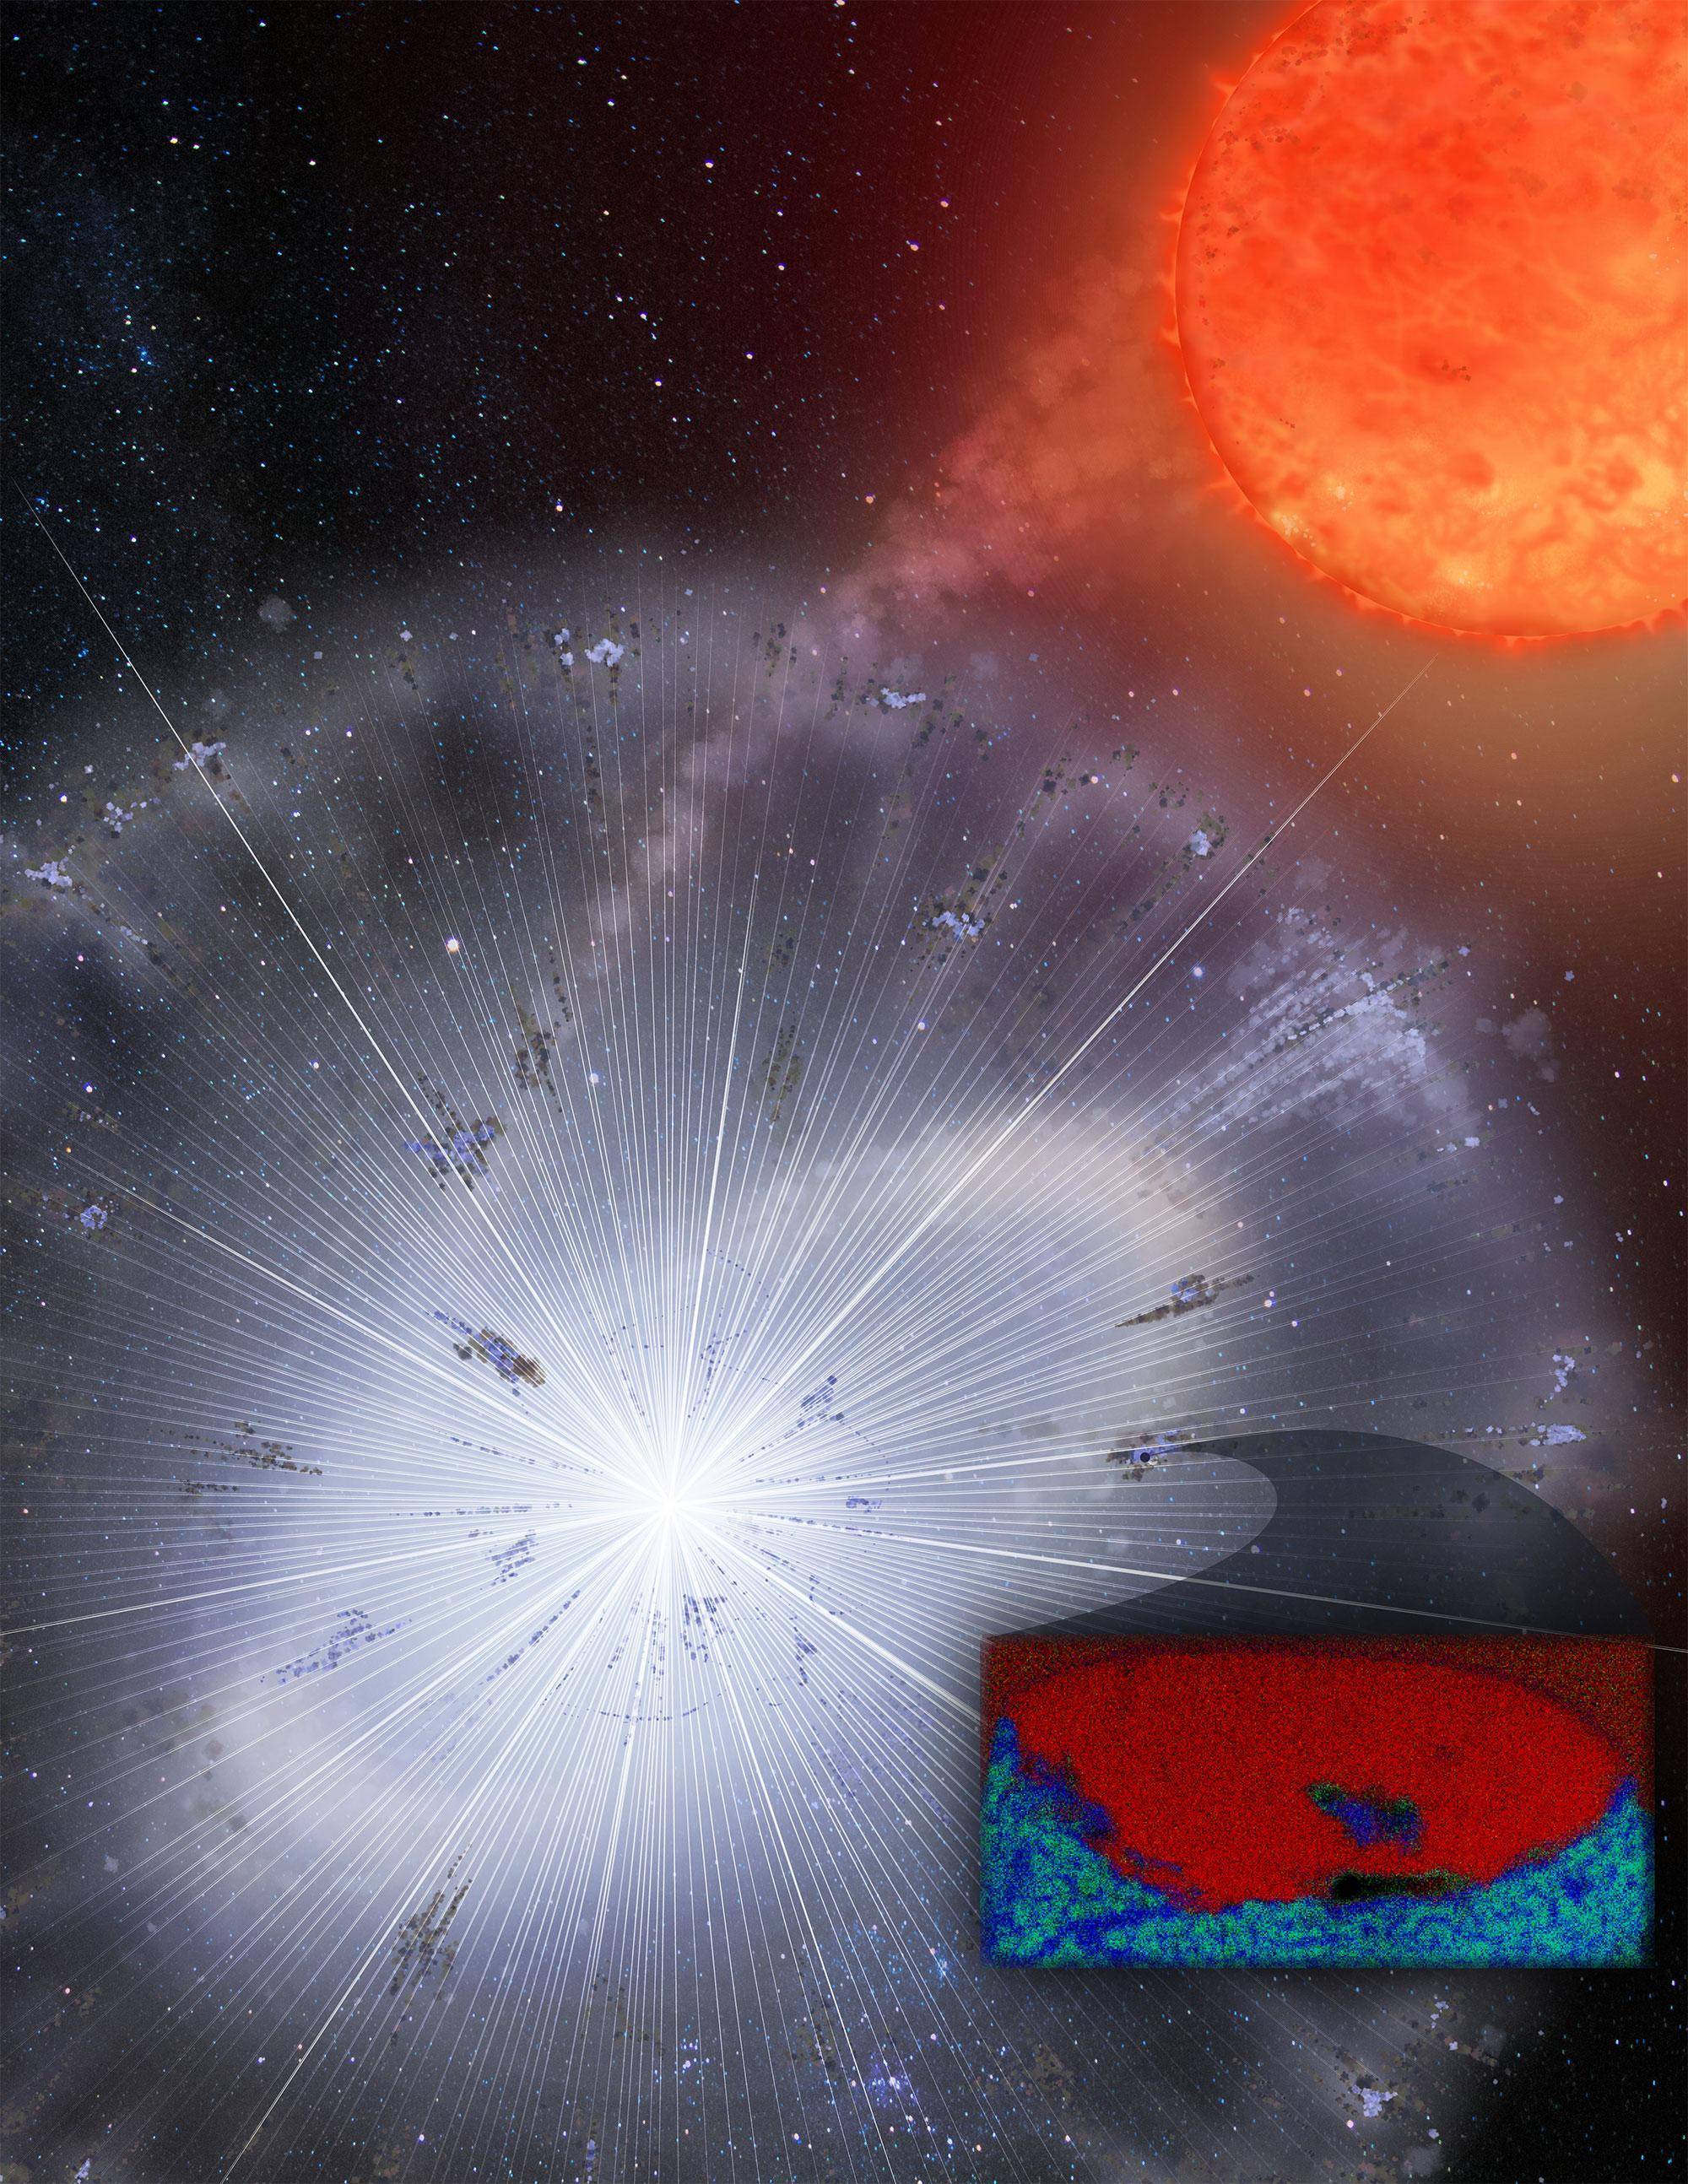 A team of researchers found a grain  encased in a meteorite that survived the formation of our solar system and analyzed it with instruments sensitive enough to identify single atoms in a sample. Measuring 1/25,000th of an inch, the carbon-rich graphite g